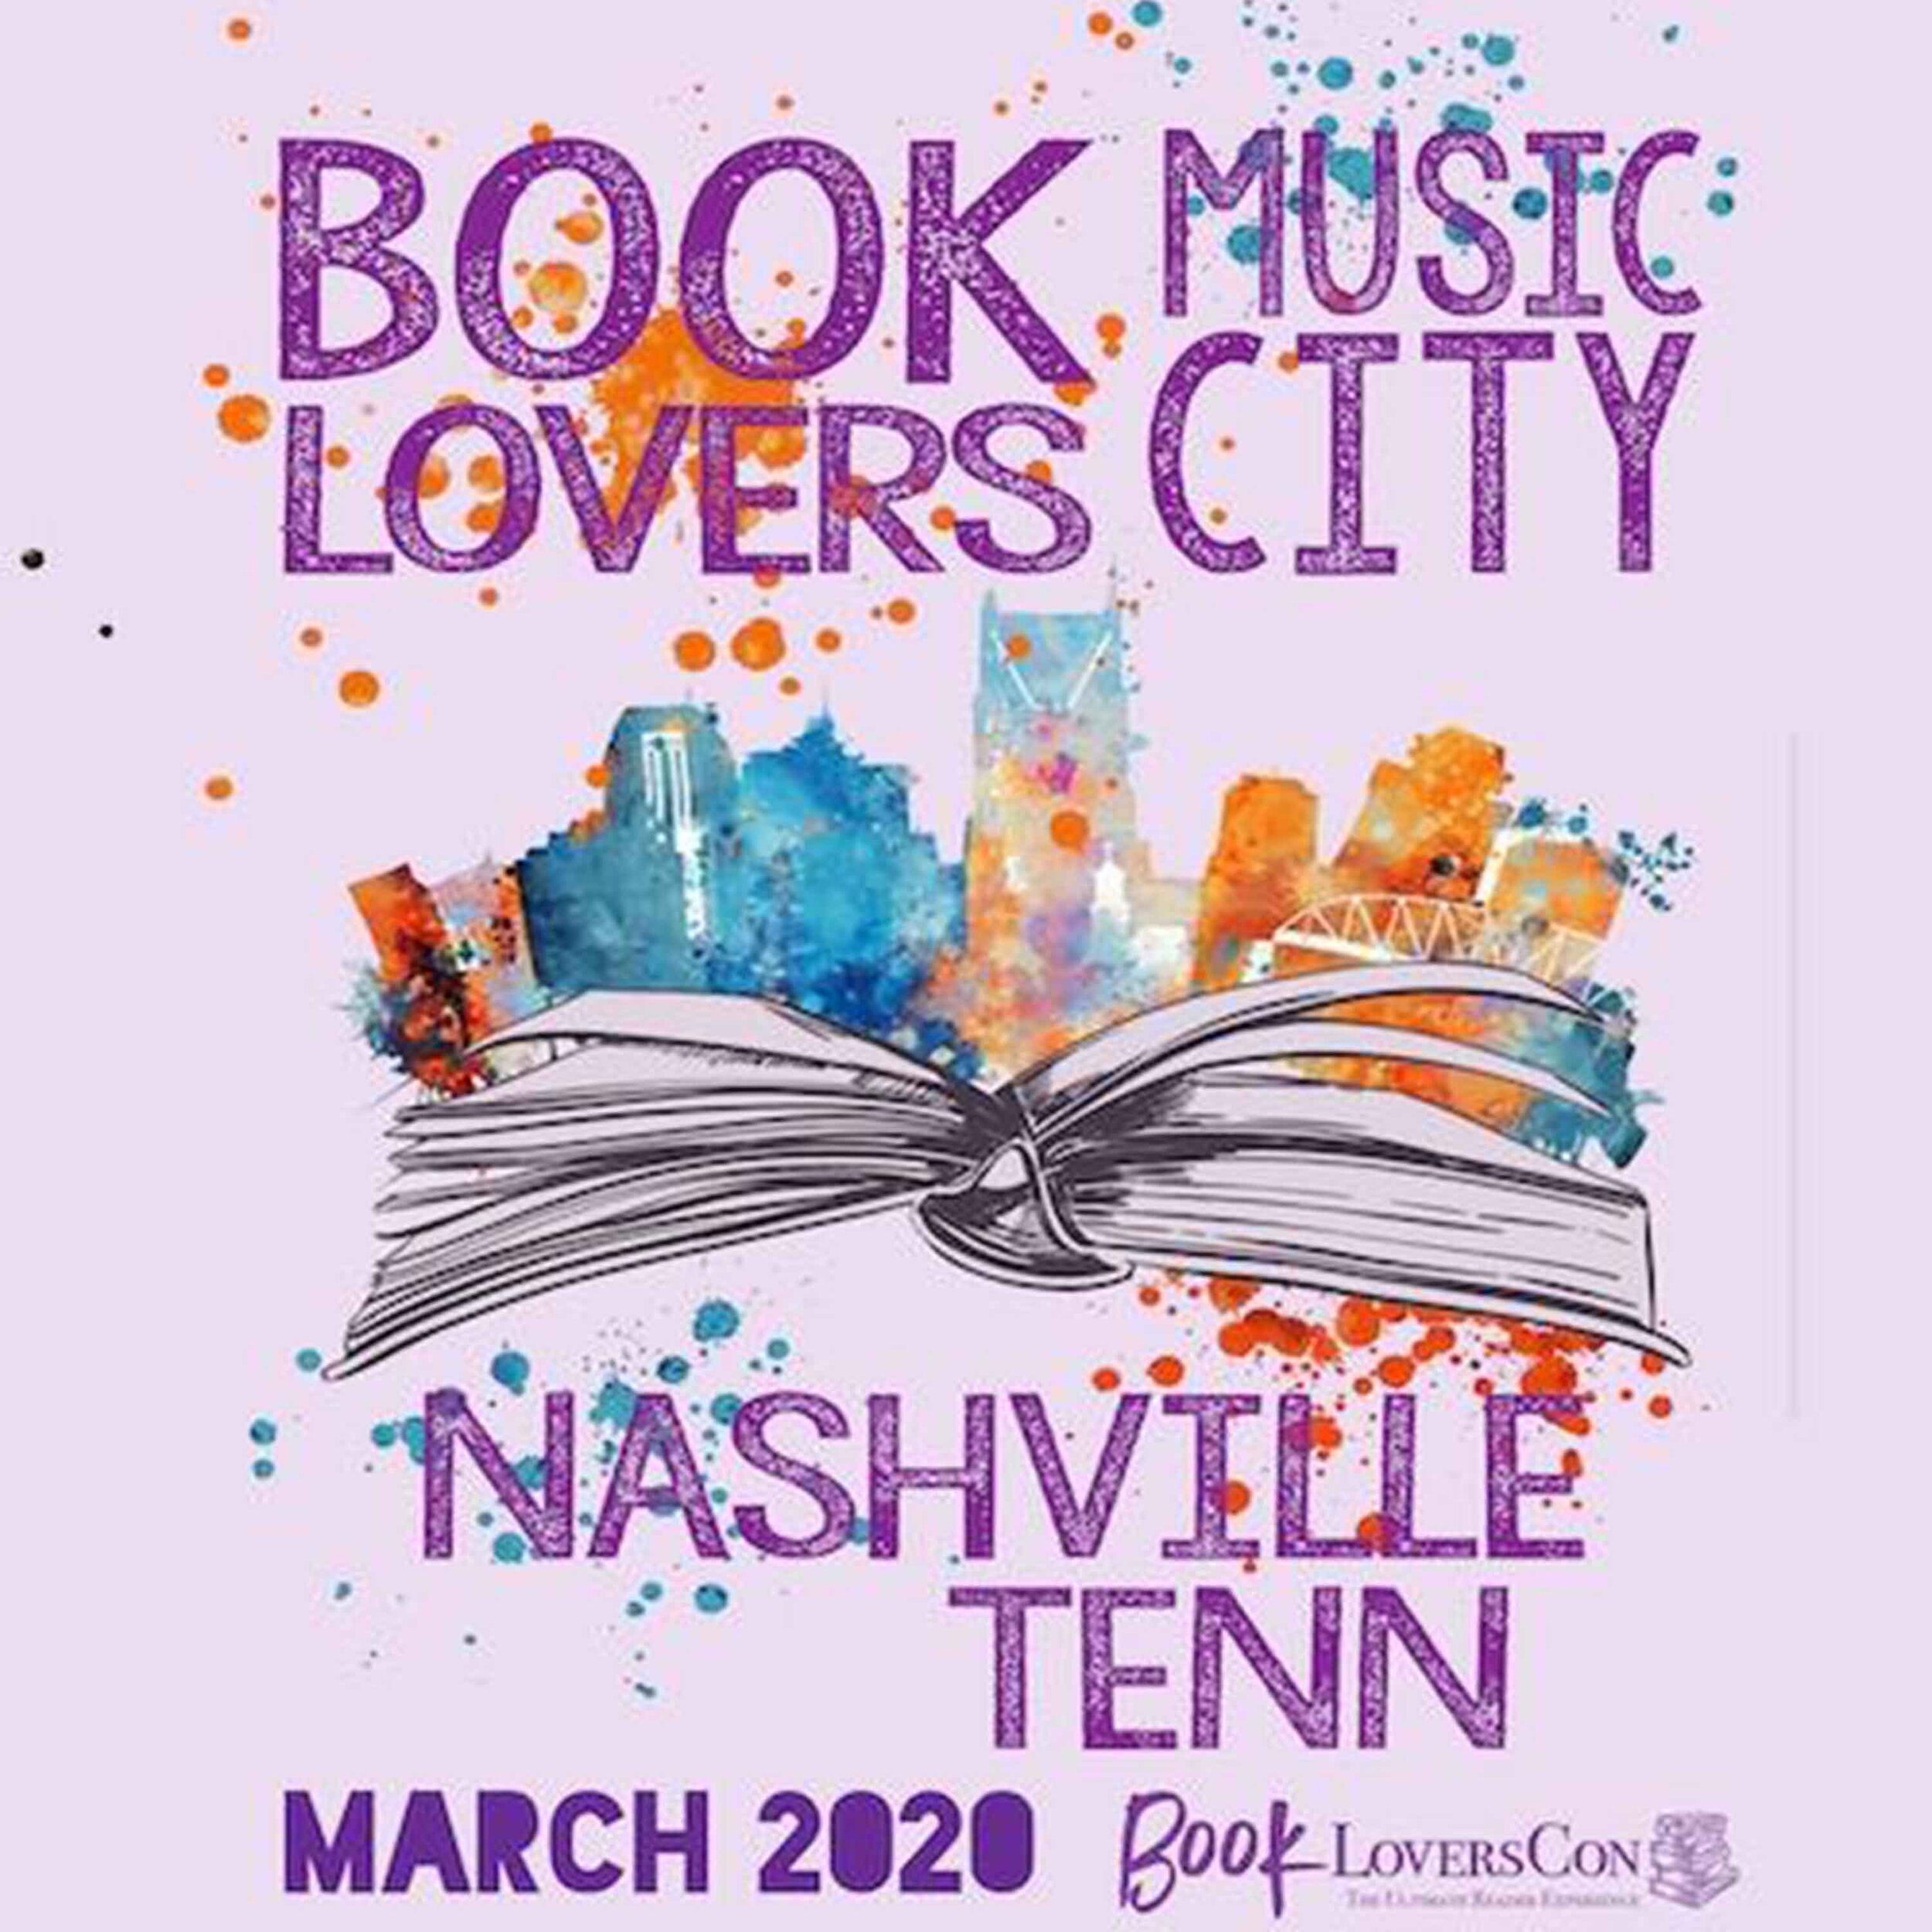 BOOKLOVERS   Save the date and start preparing for Booklovers Con, March 2020, Nashville, Tennessee.      More…